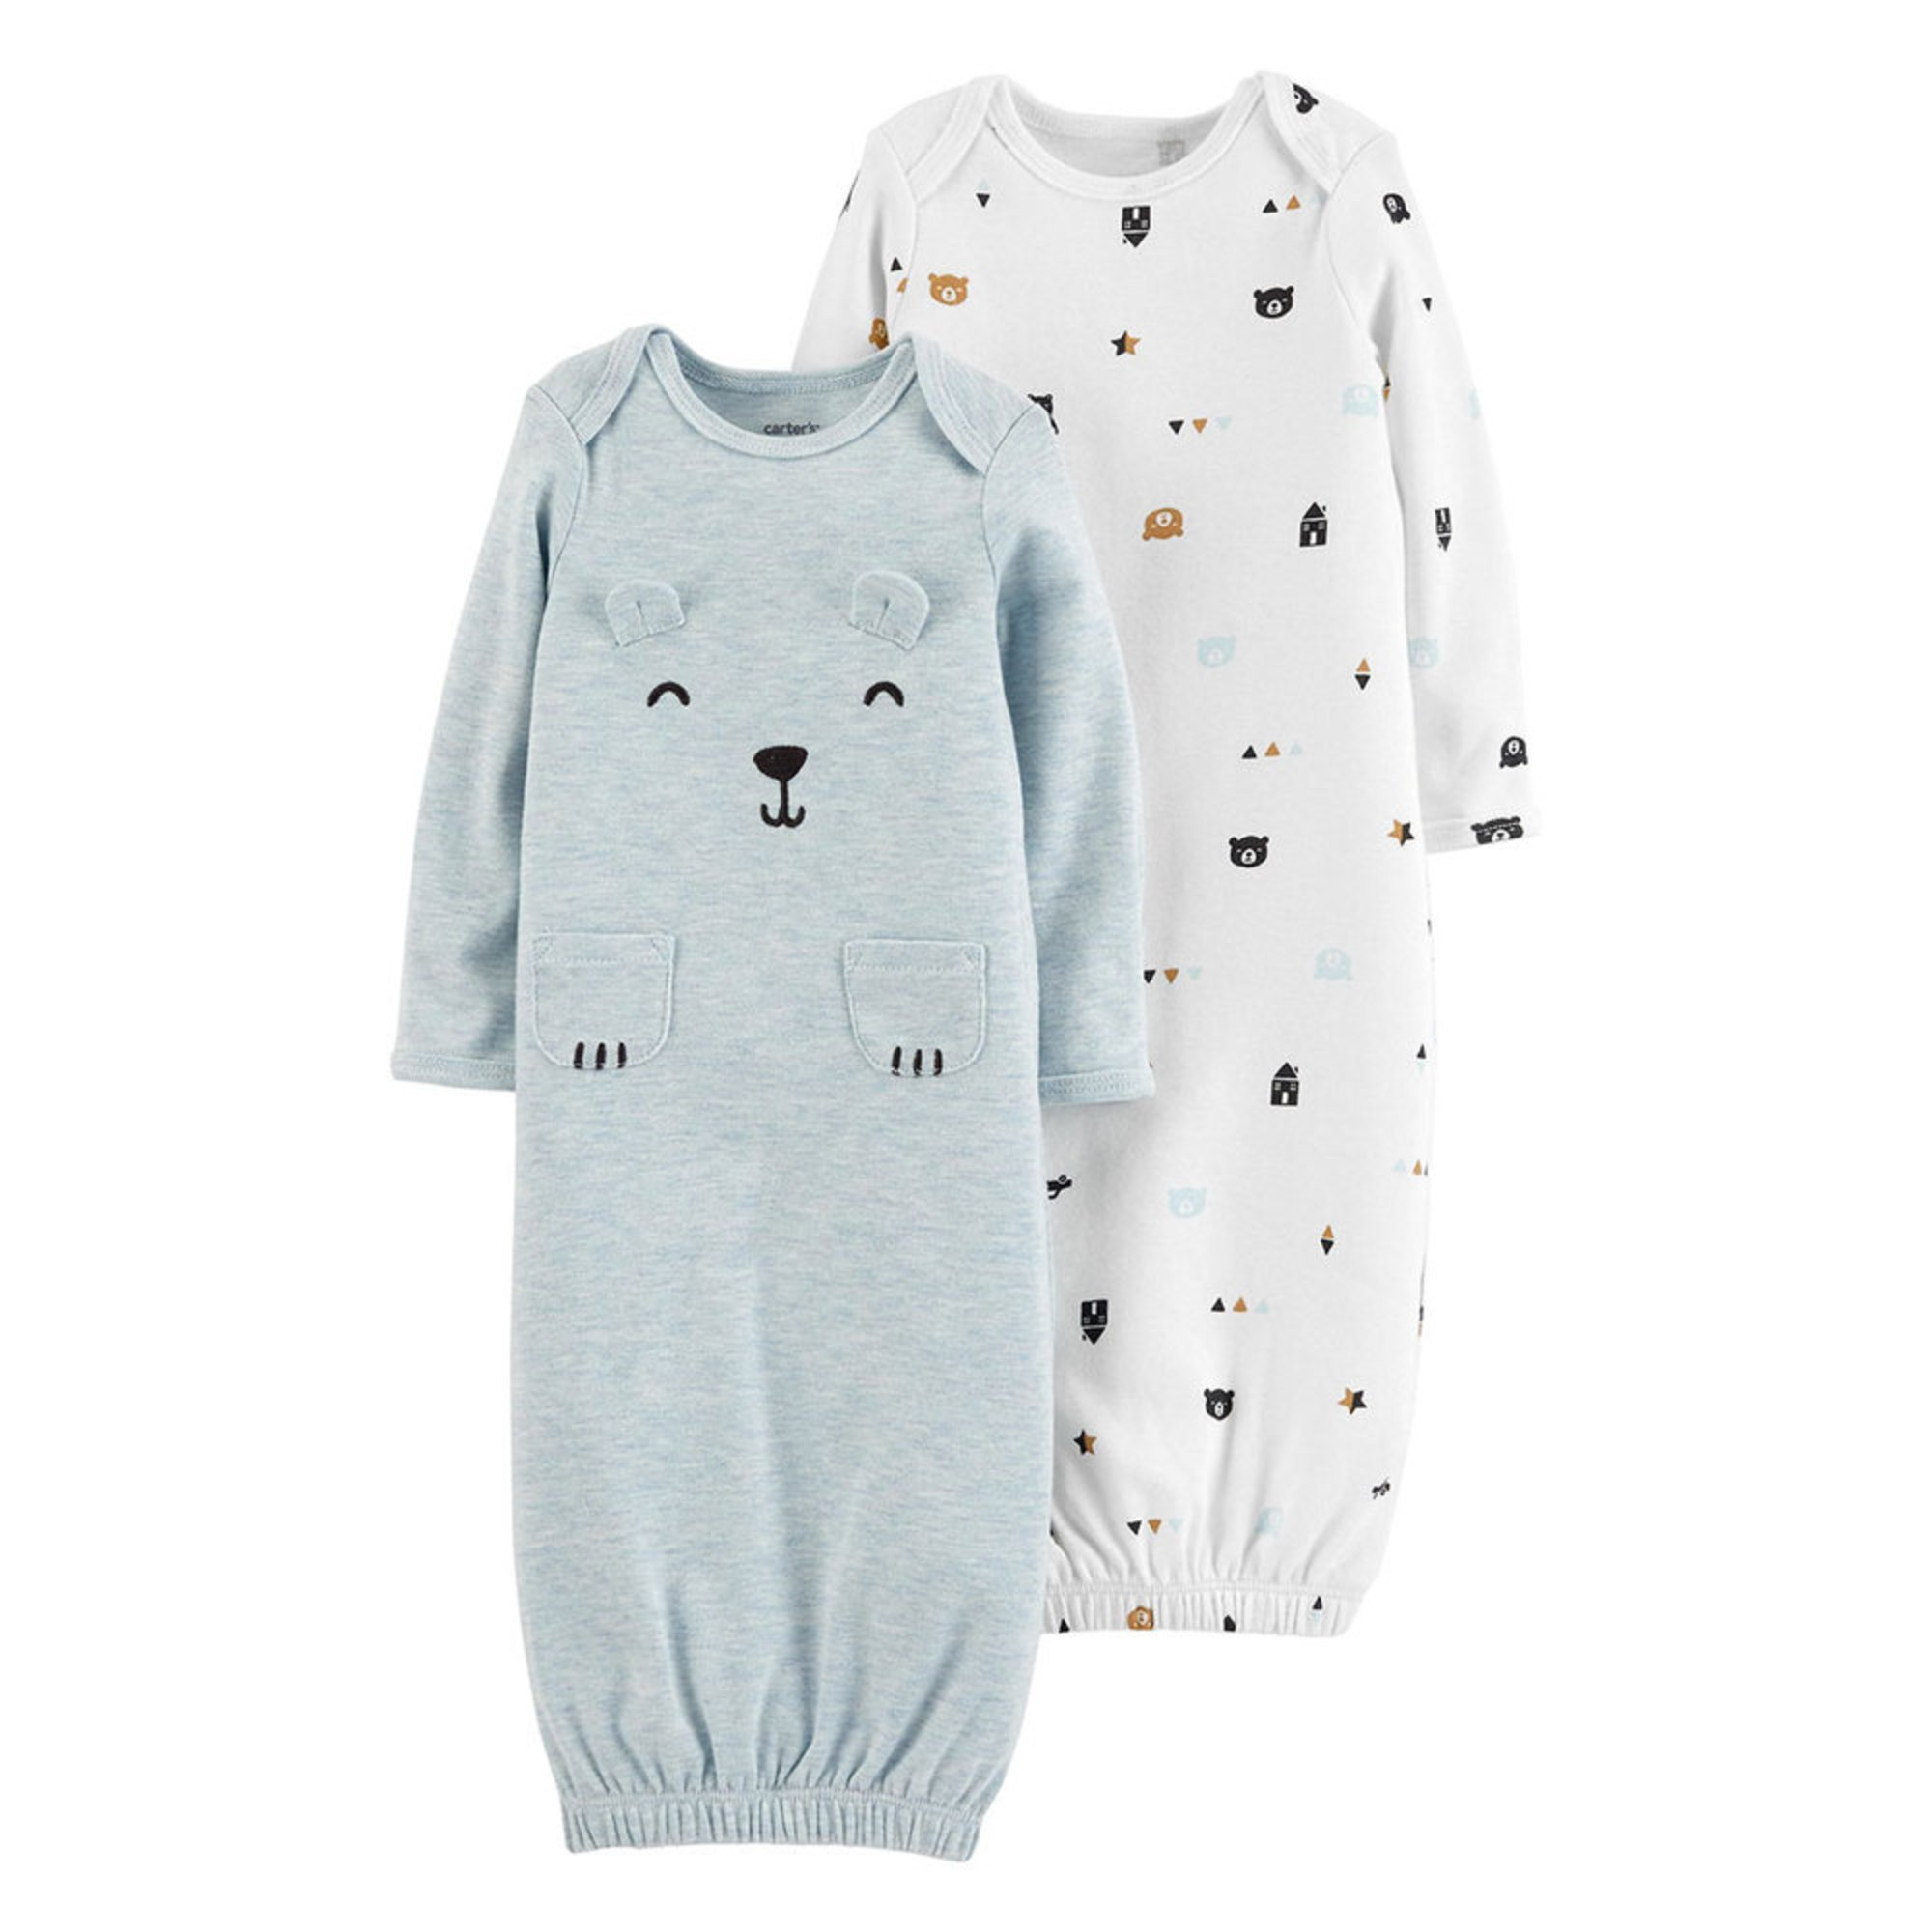 bde8330a2 Carter s Baby Boys  2-pack Gown Set